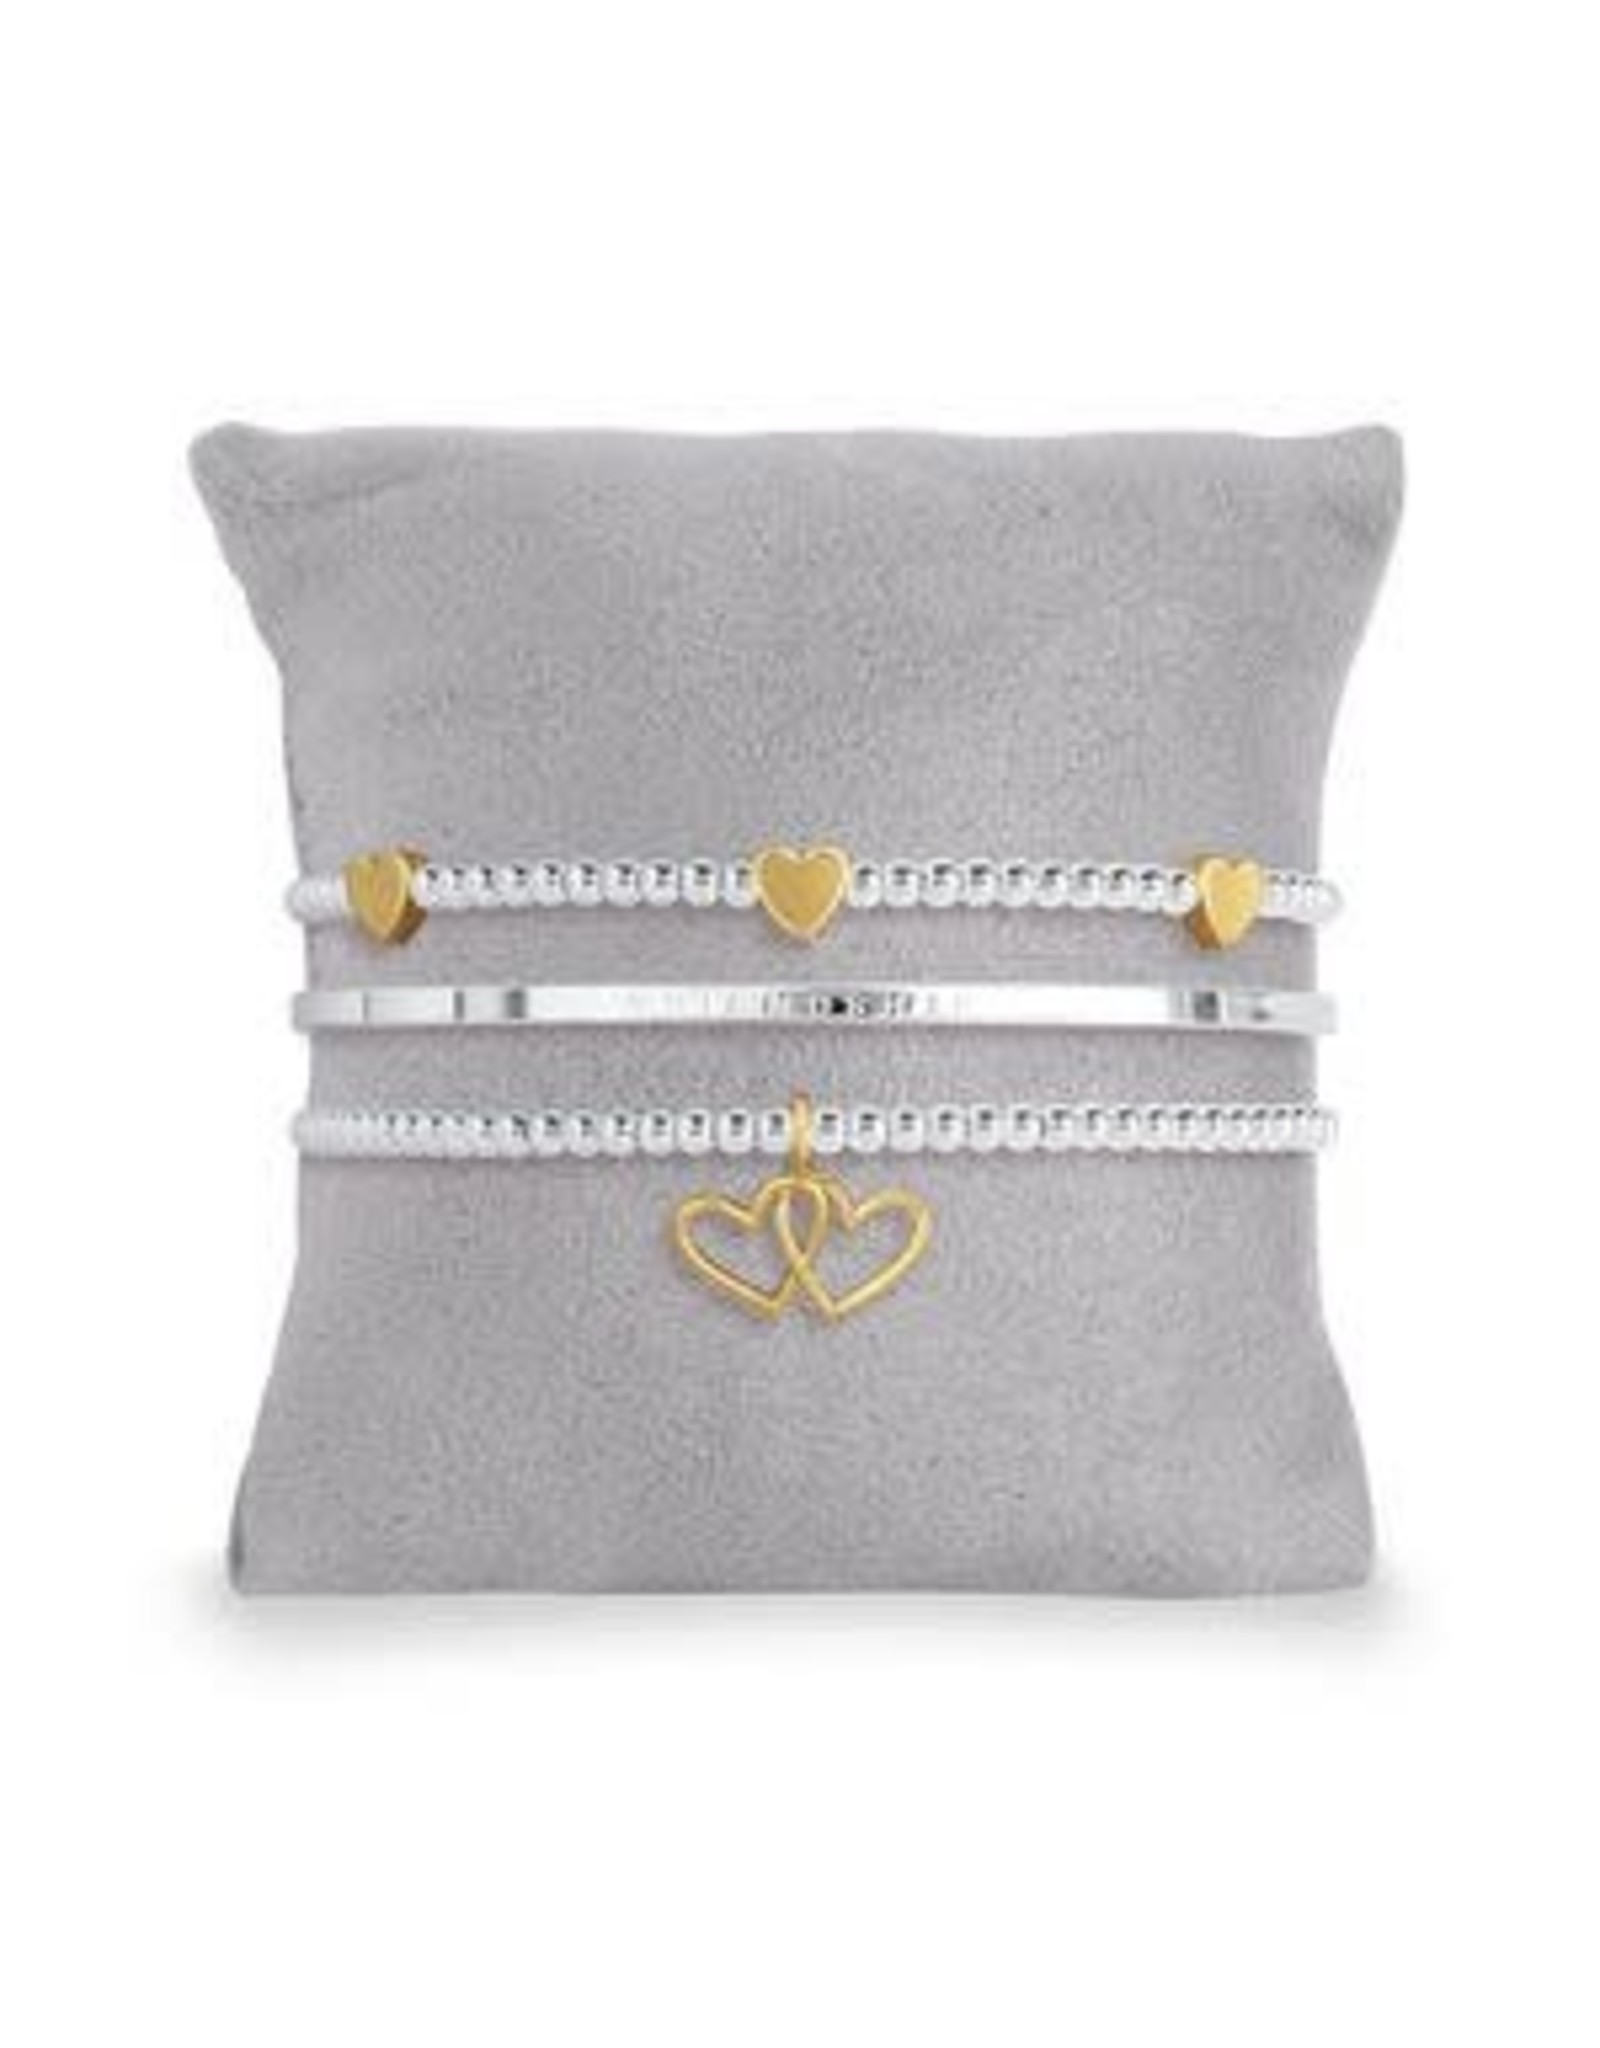 Katie Loxton Occasion Gift Box- Friendship